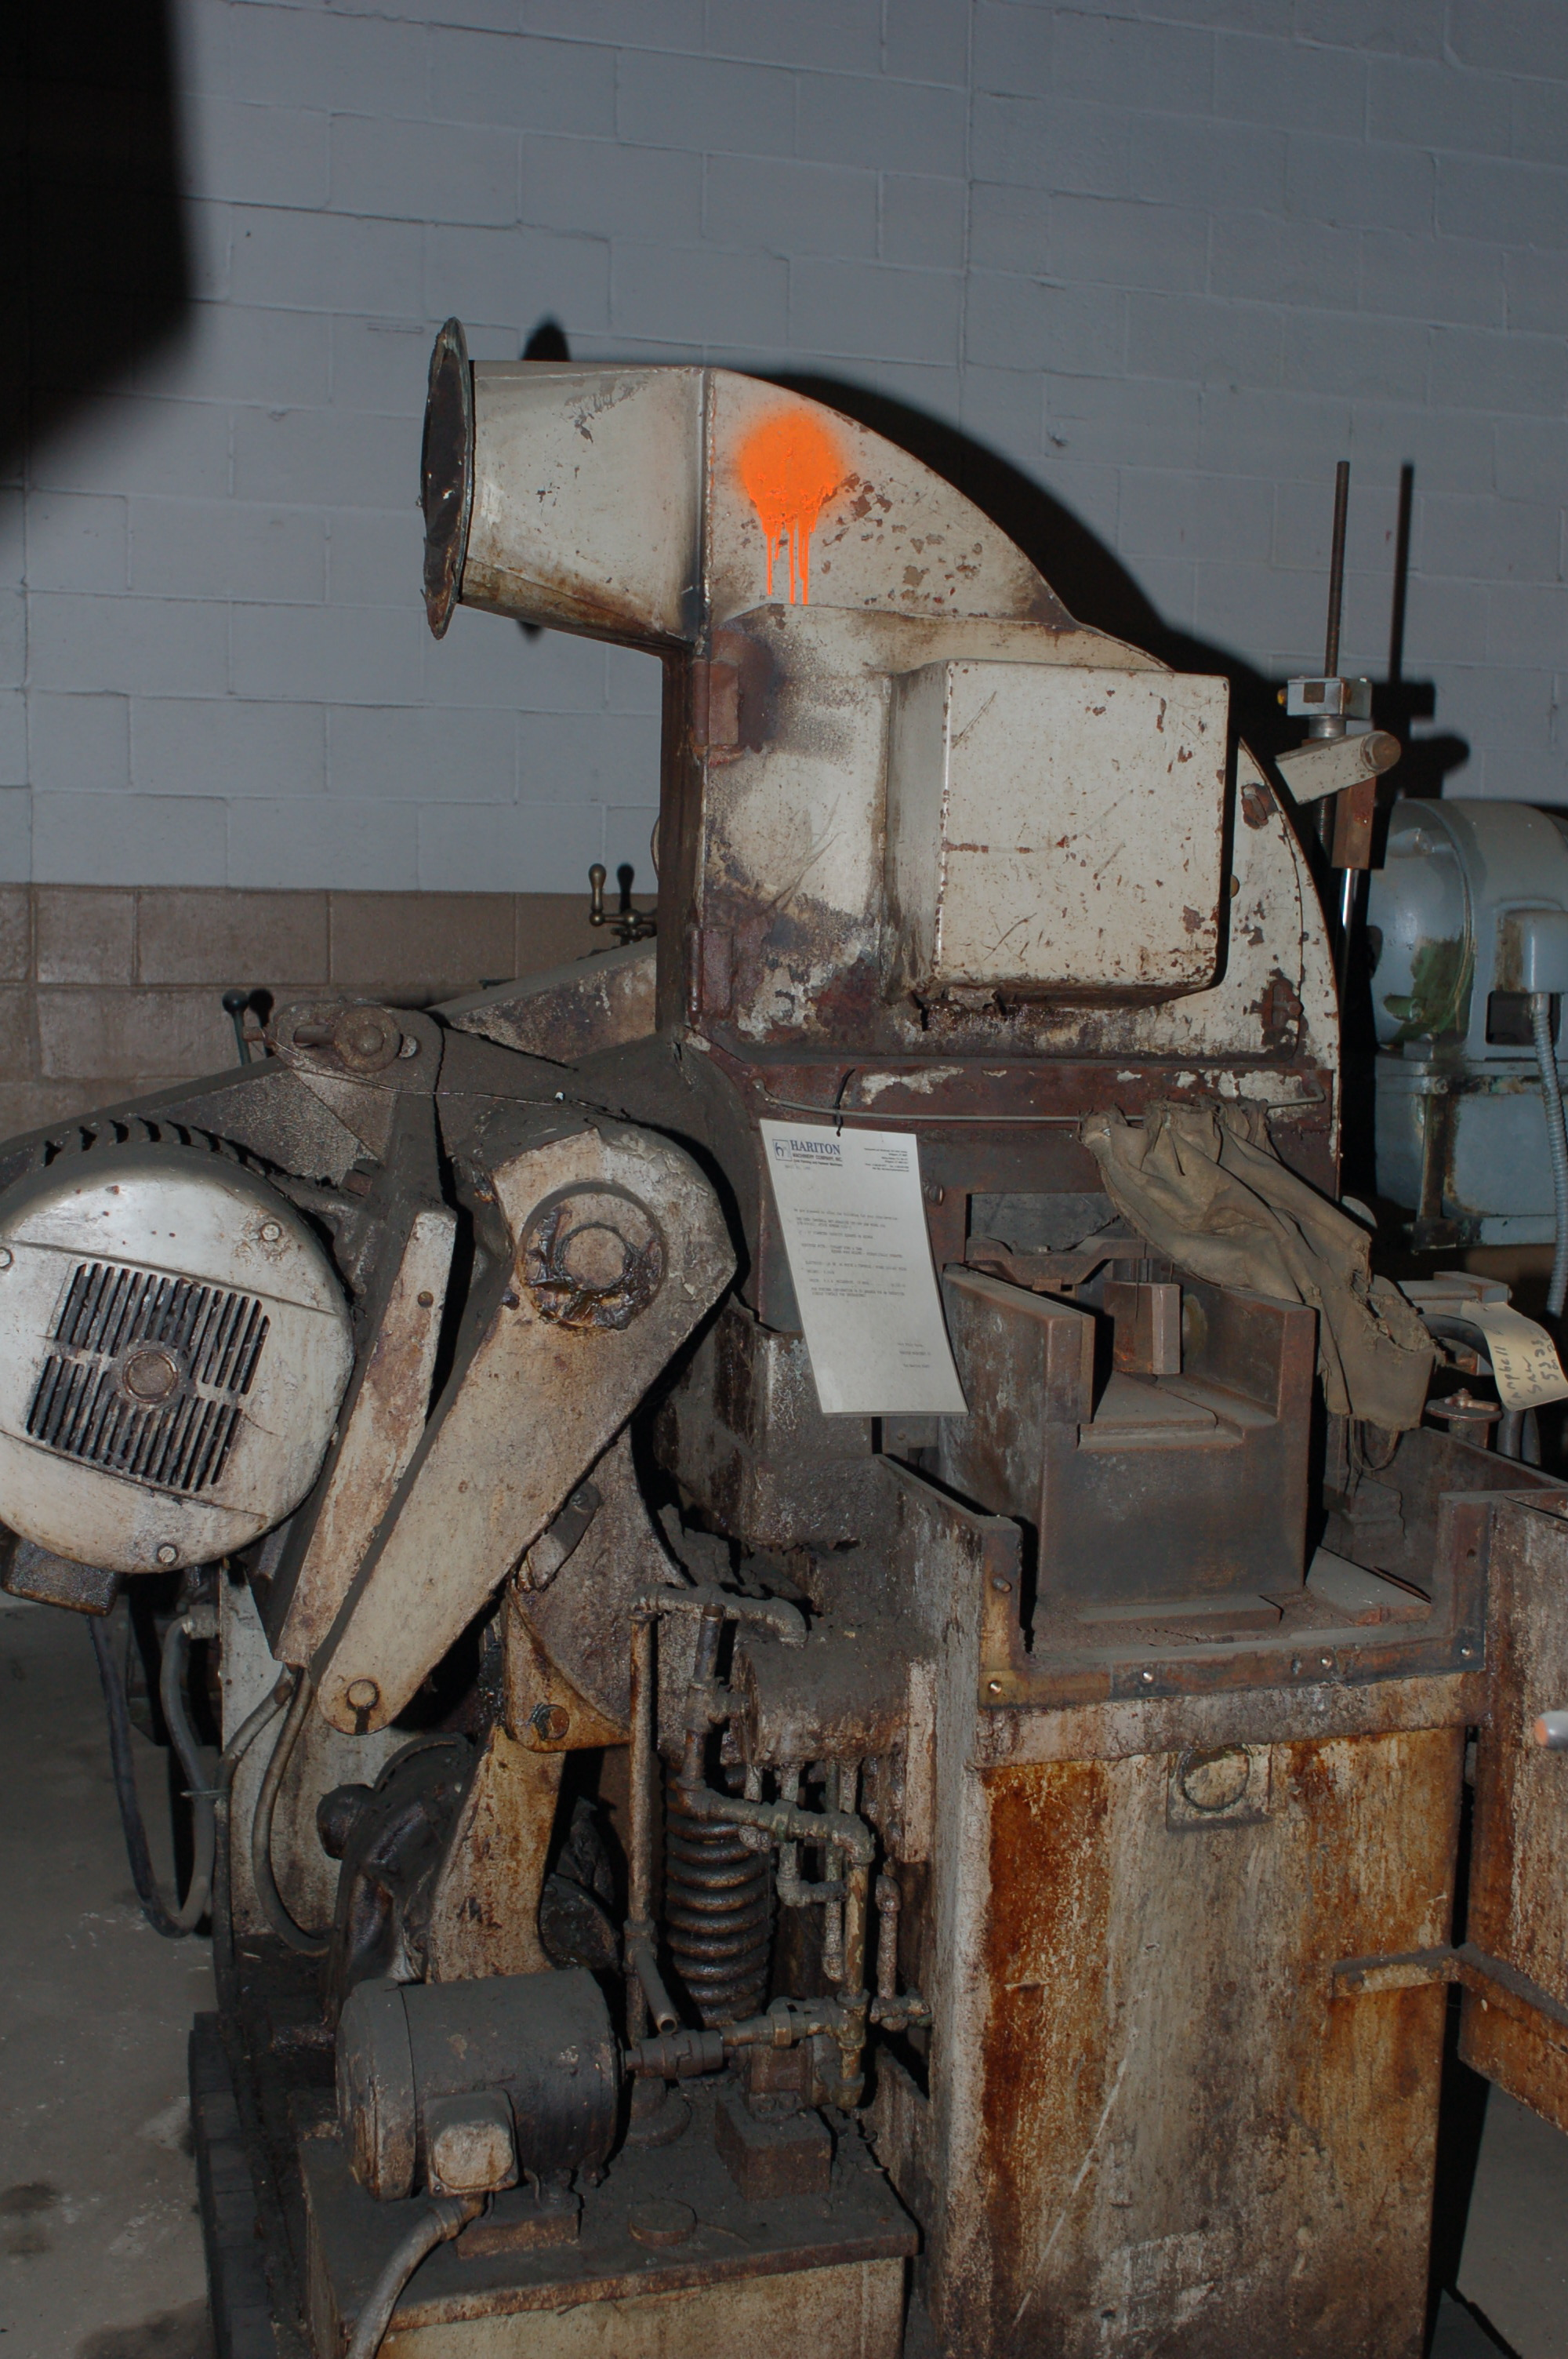 Campbell Model 406 Wet Abrasive Cut-Off Saw